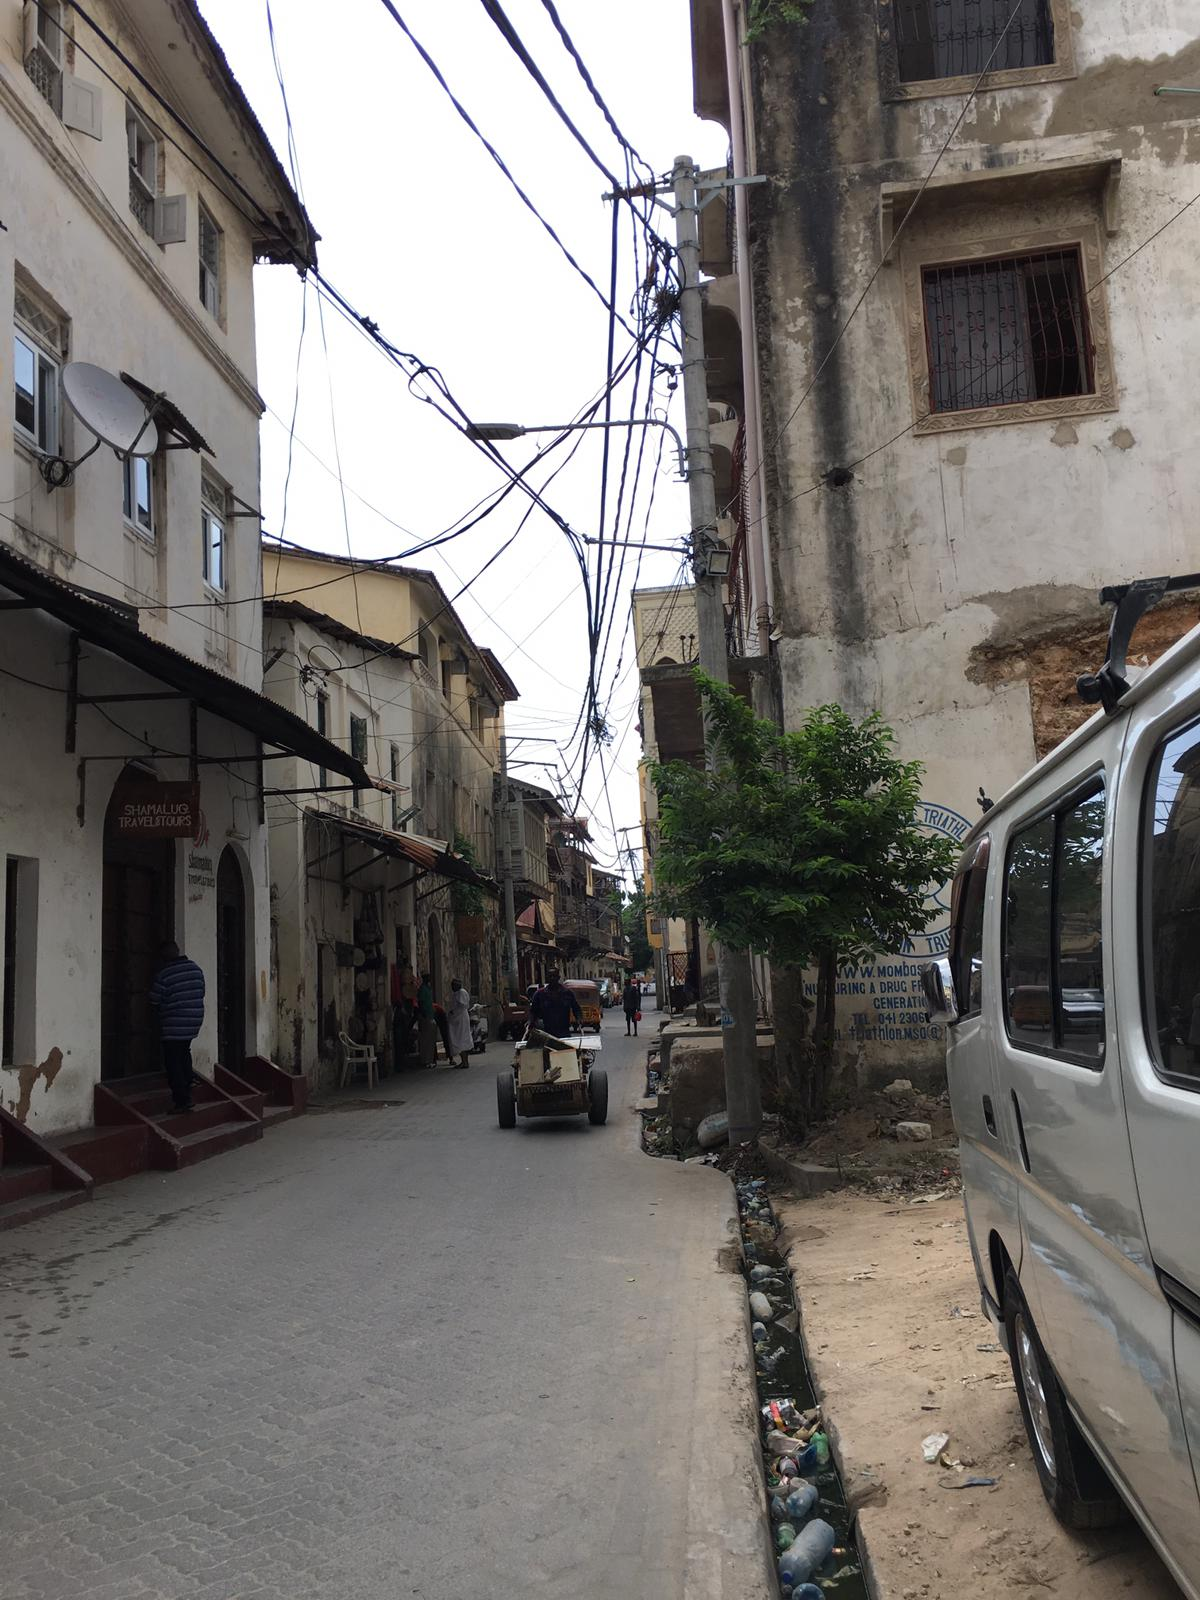 Streets of old town Mombasa